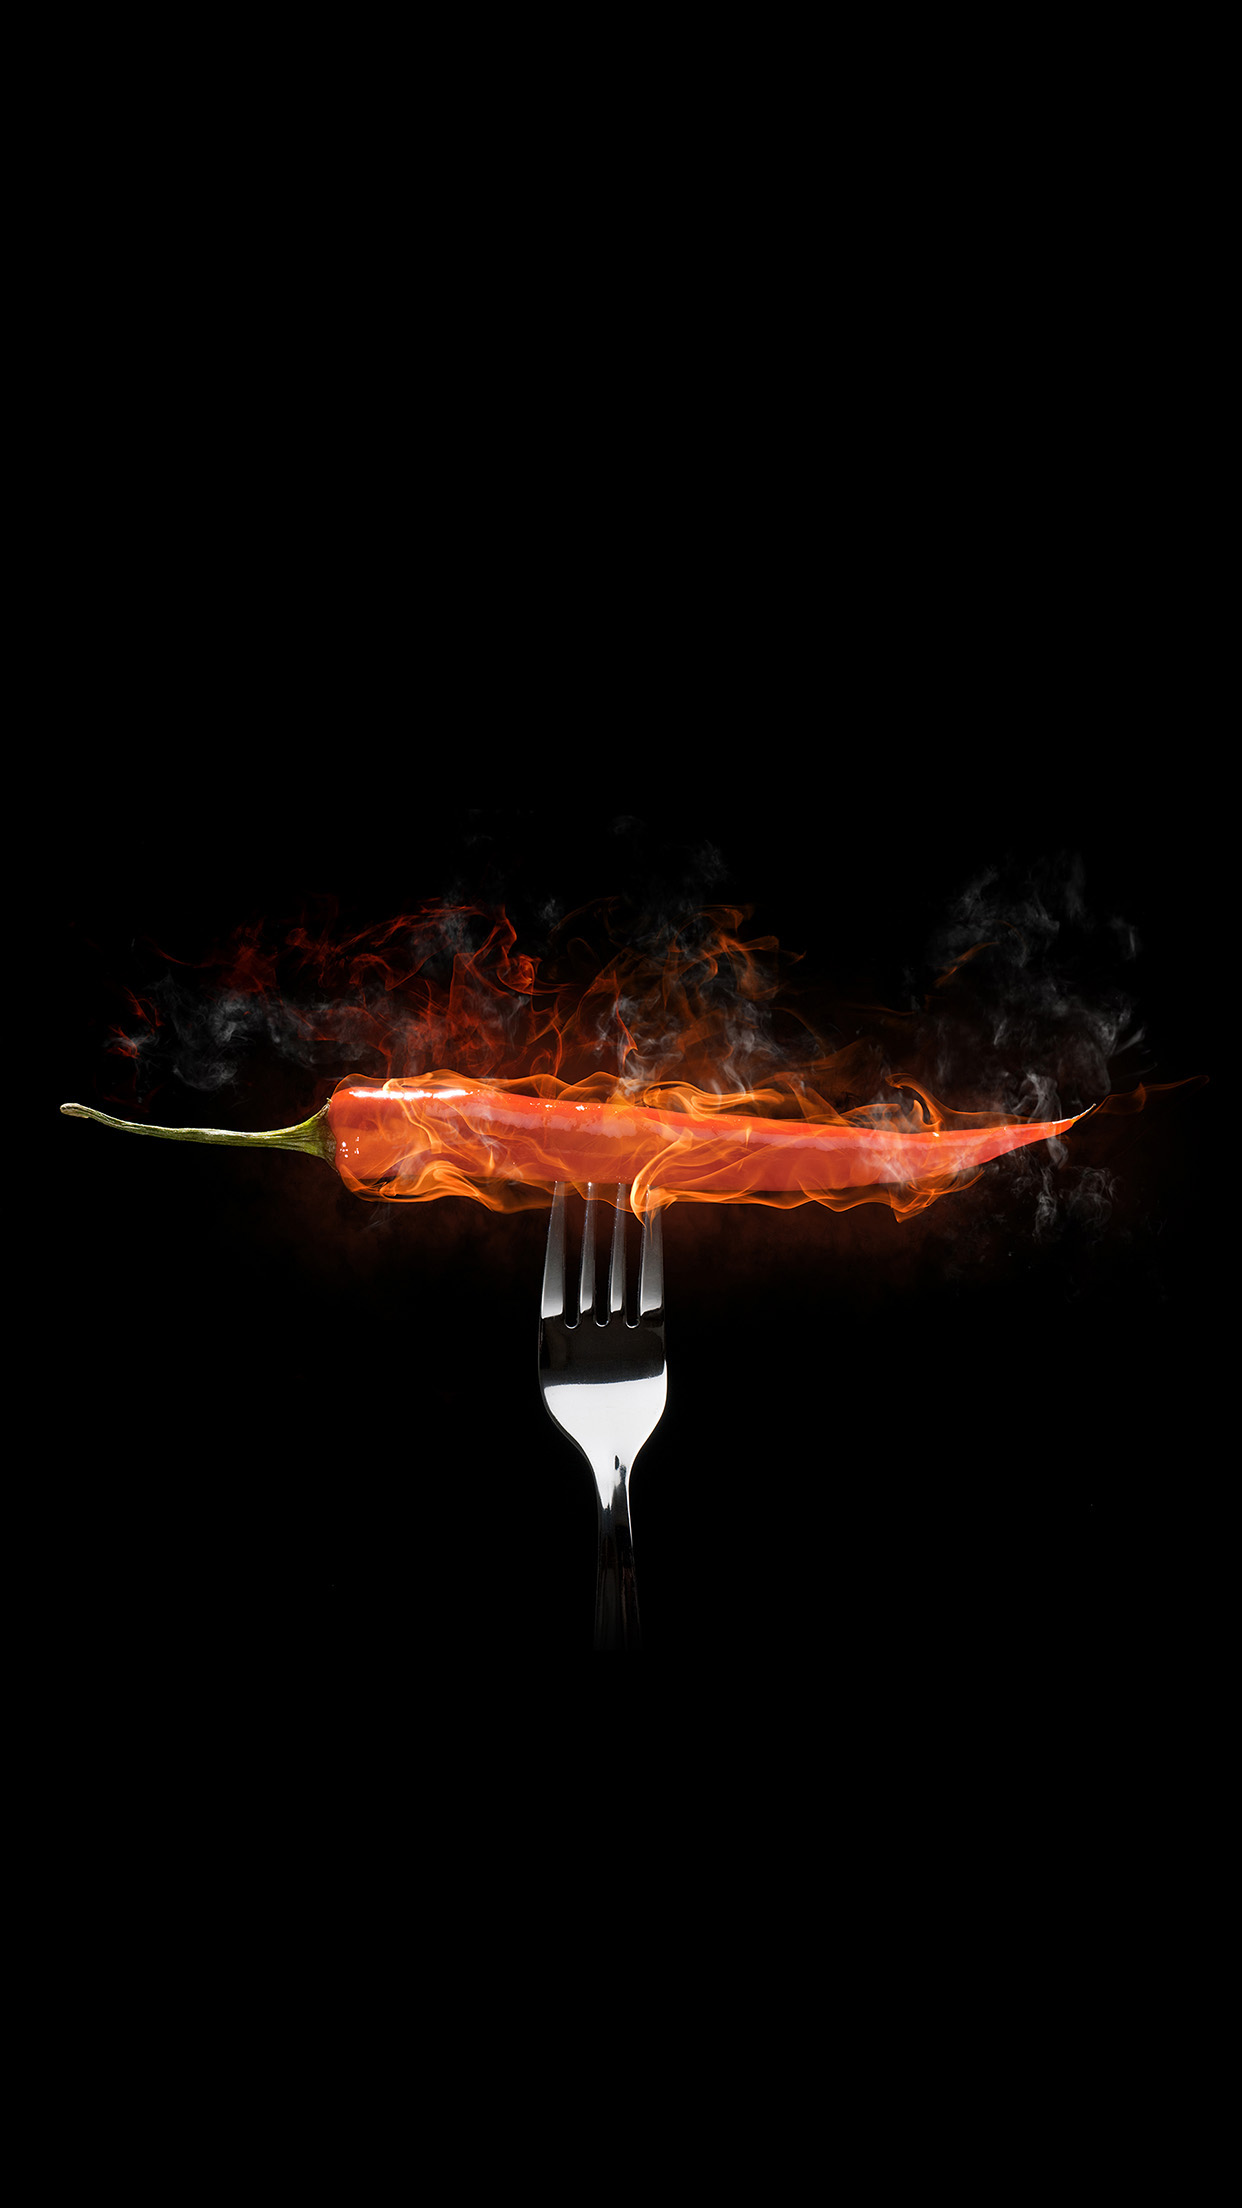 Red Hot Ghost Chili Pepper Flames Fork Illustration Android Wallpaper